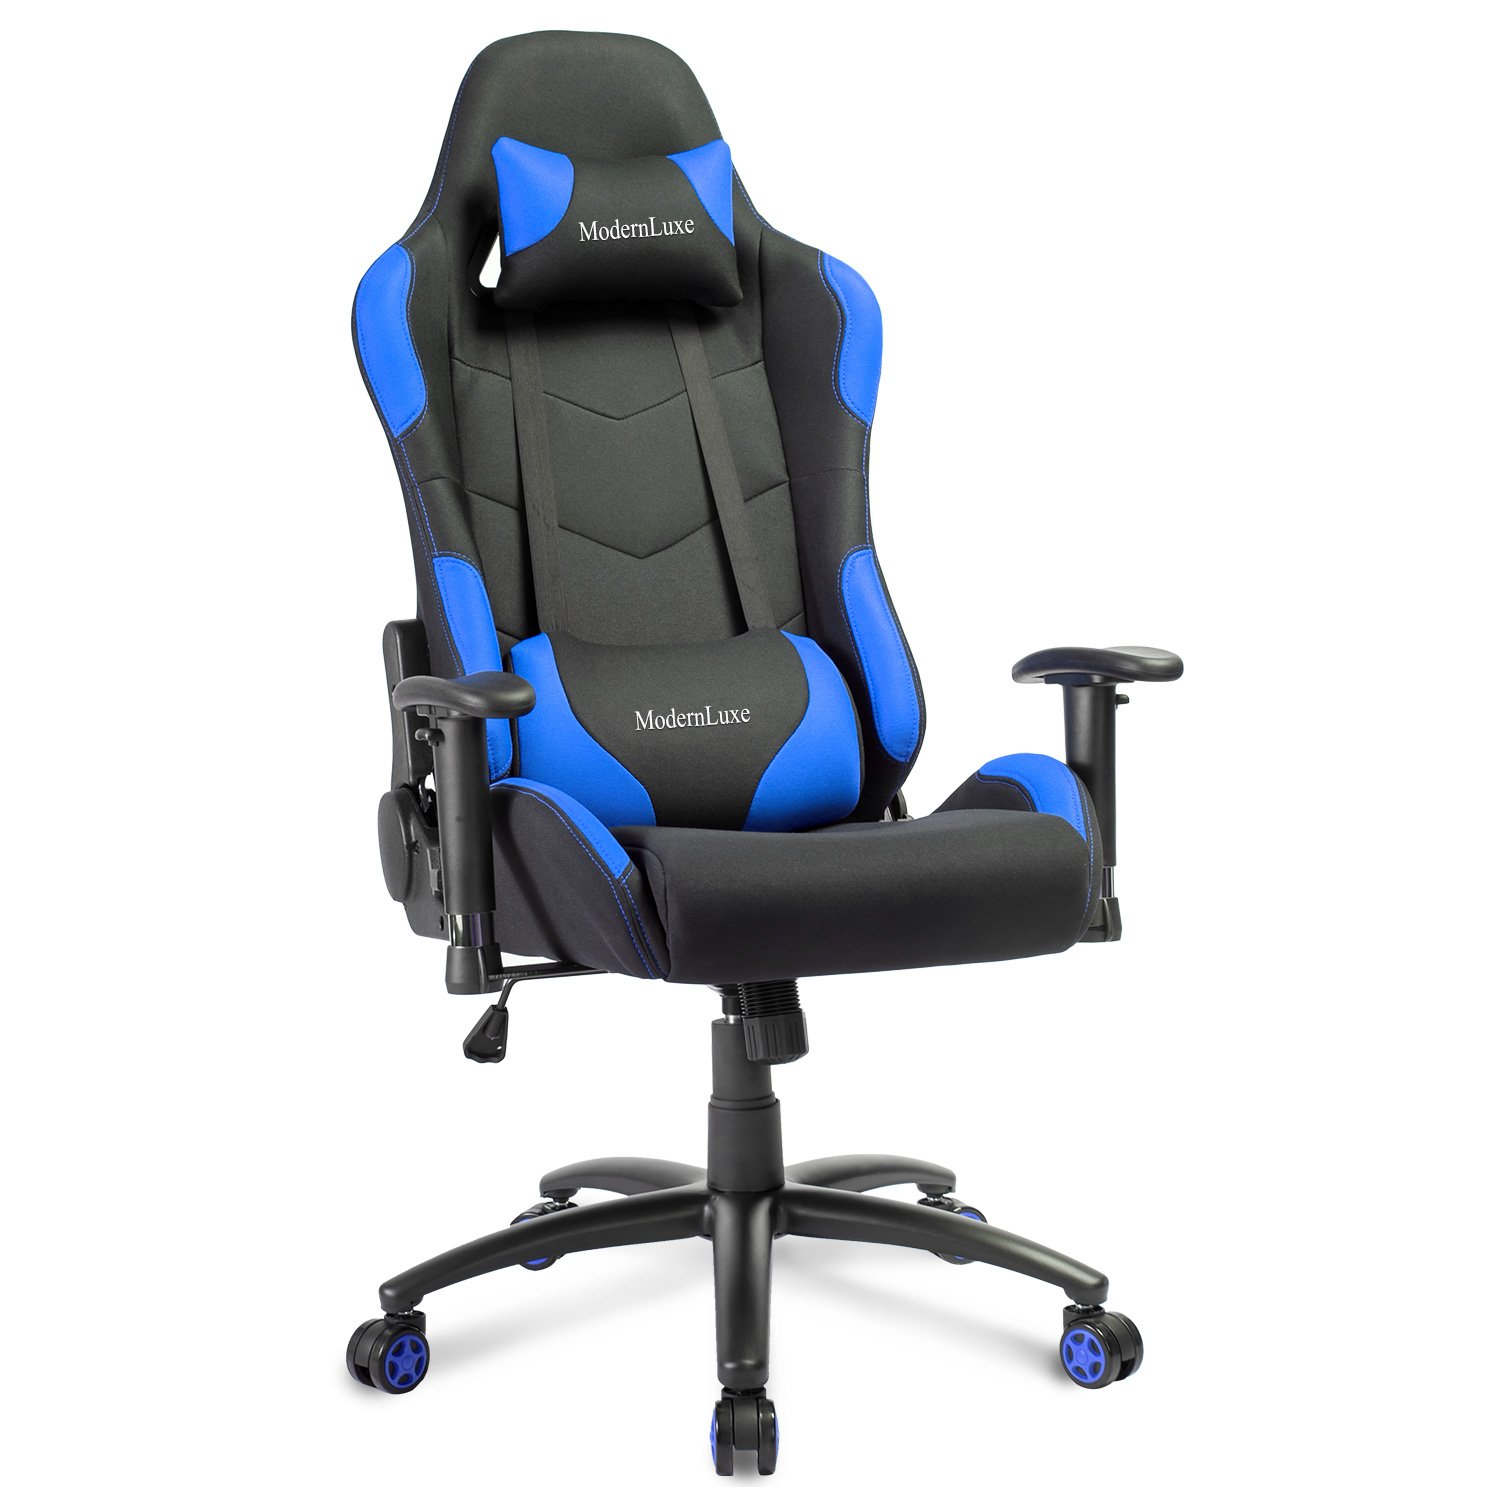 Modern Luxe Reclining Fabric Racing Office Chair Computer Gaming Chair (Blue)